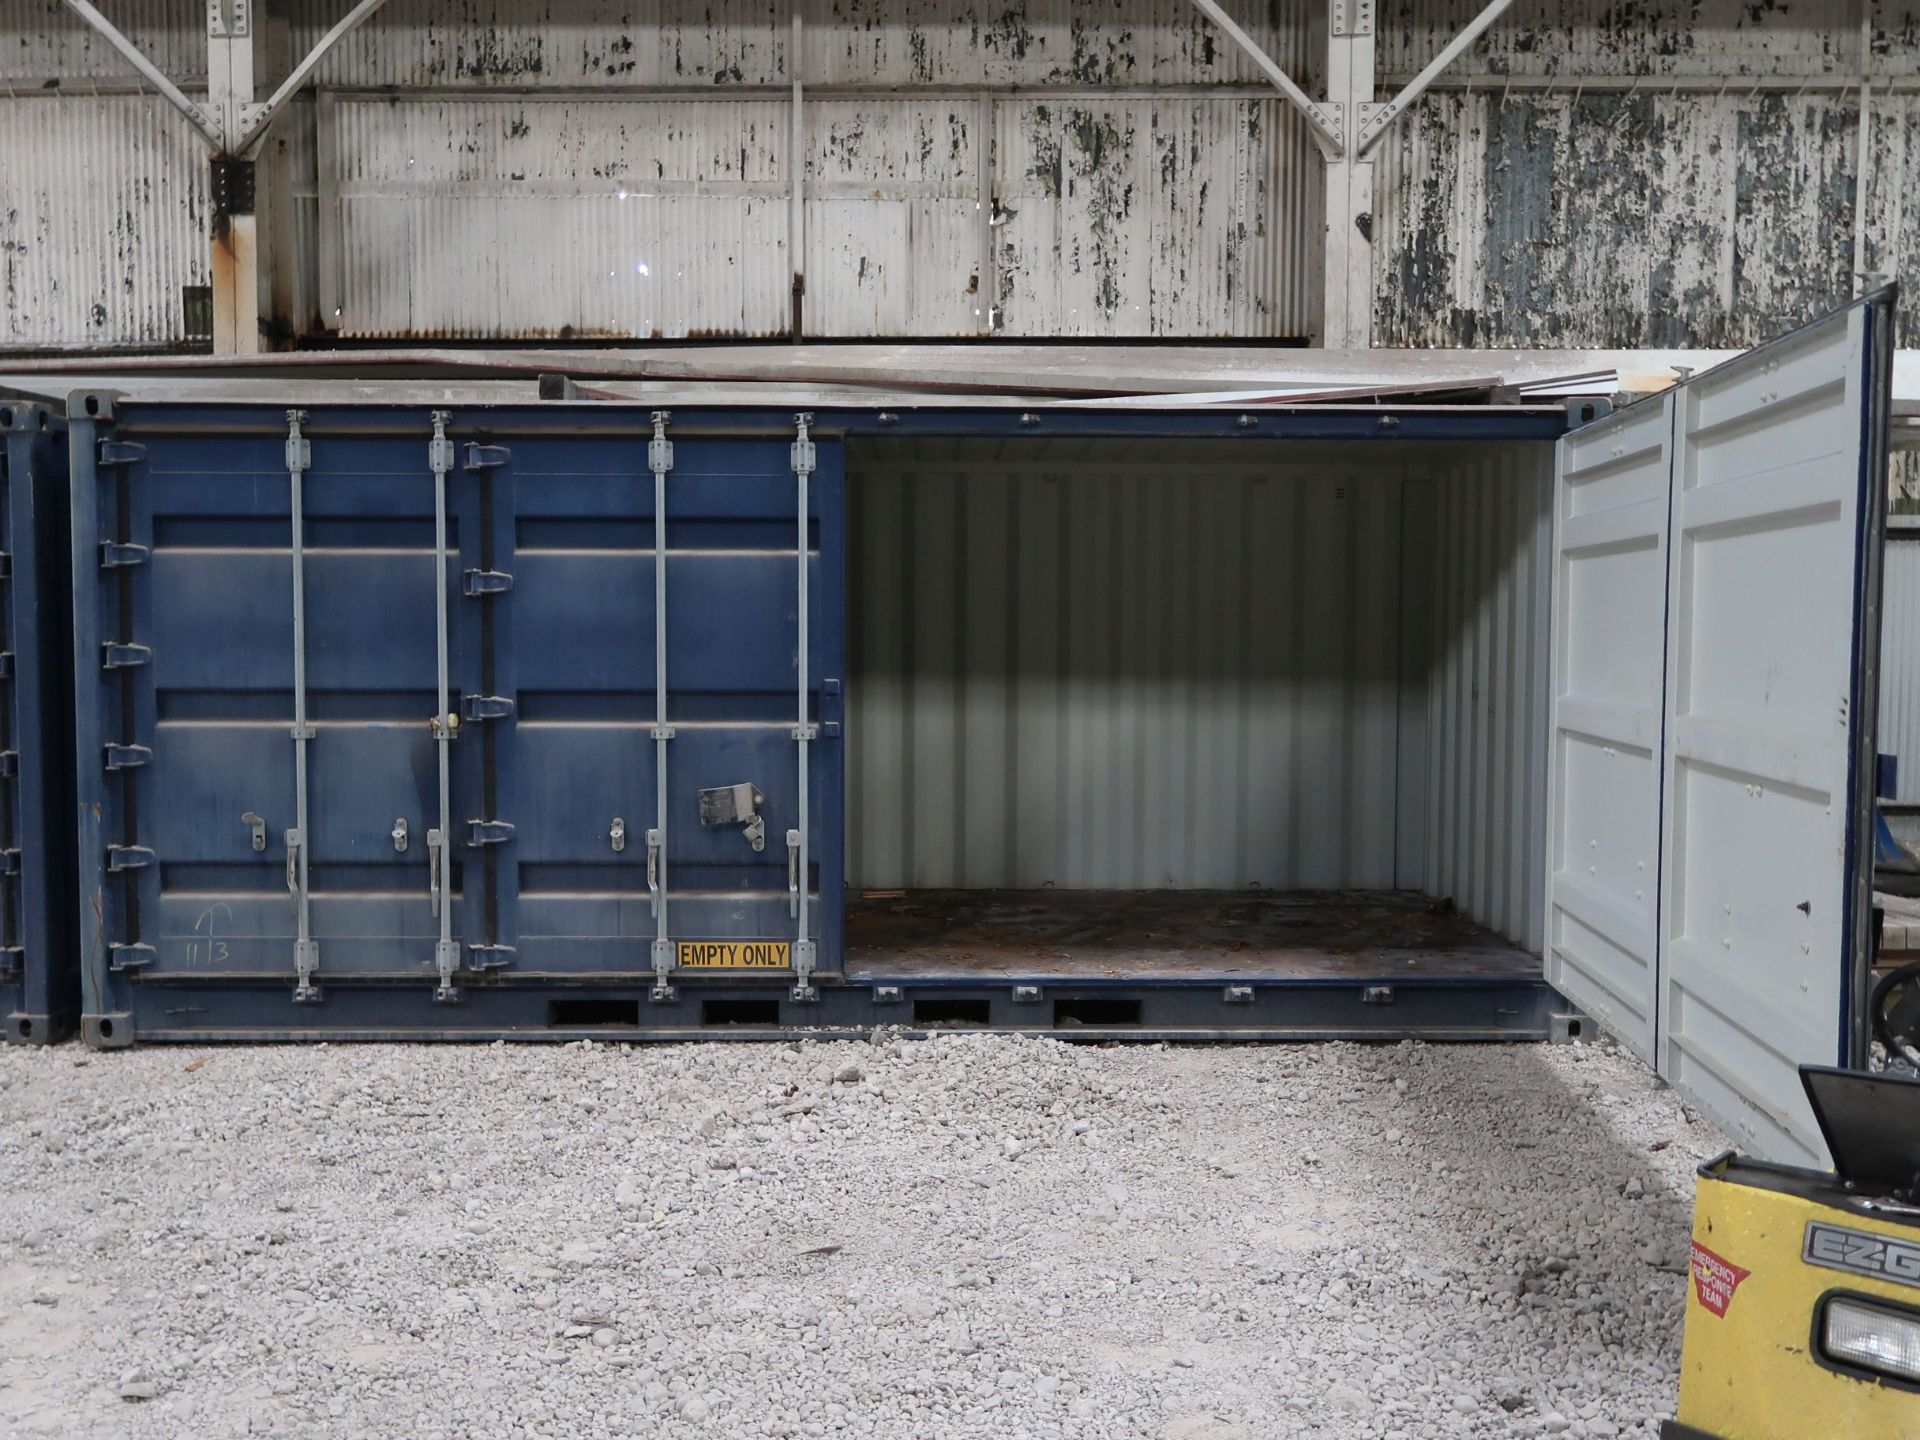 Lot 268 - 8' X 20' CONTAINER PROVIDERS INTERNATIONAL CONEX CONTAINER, SIDE AND END DOORS; NO. 555715 (NEW